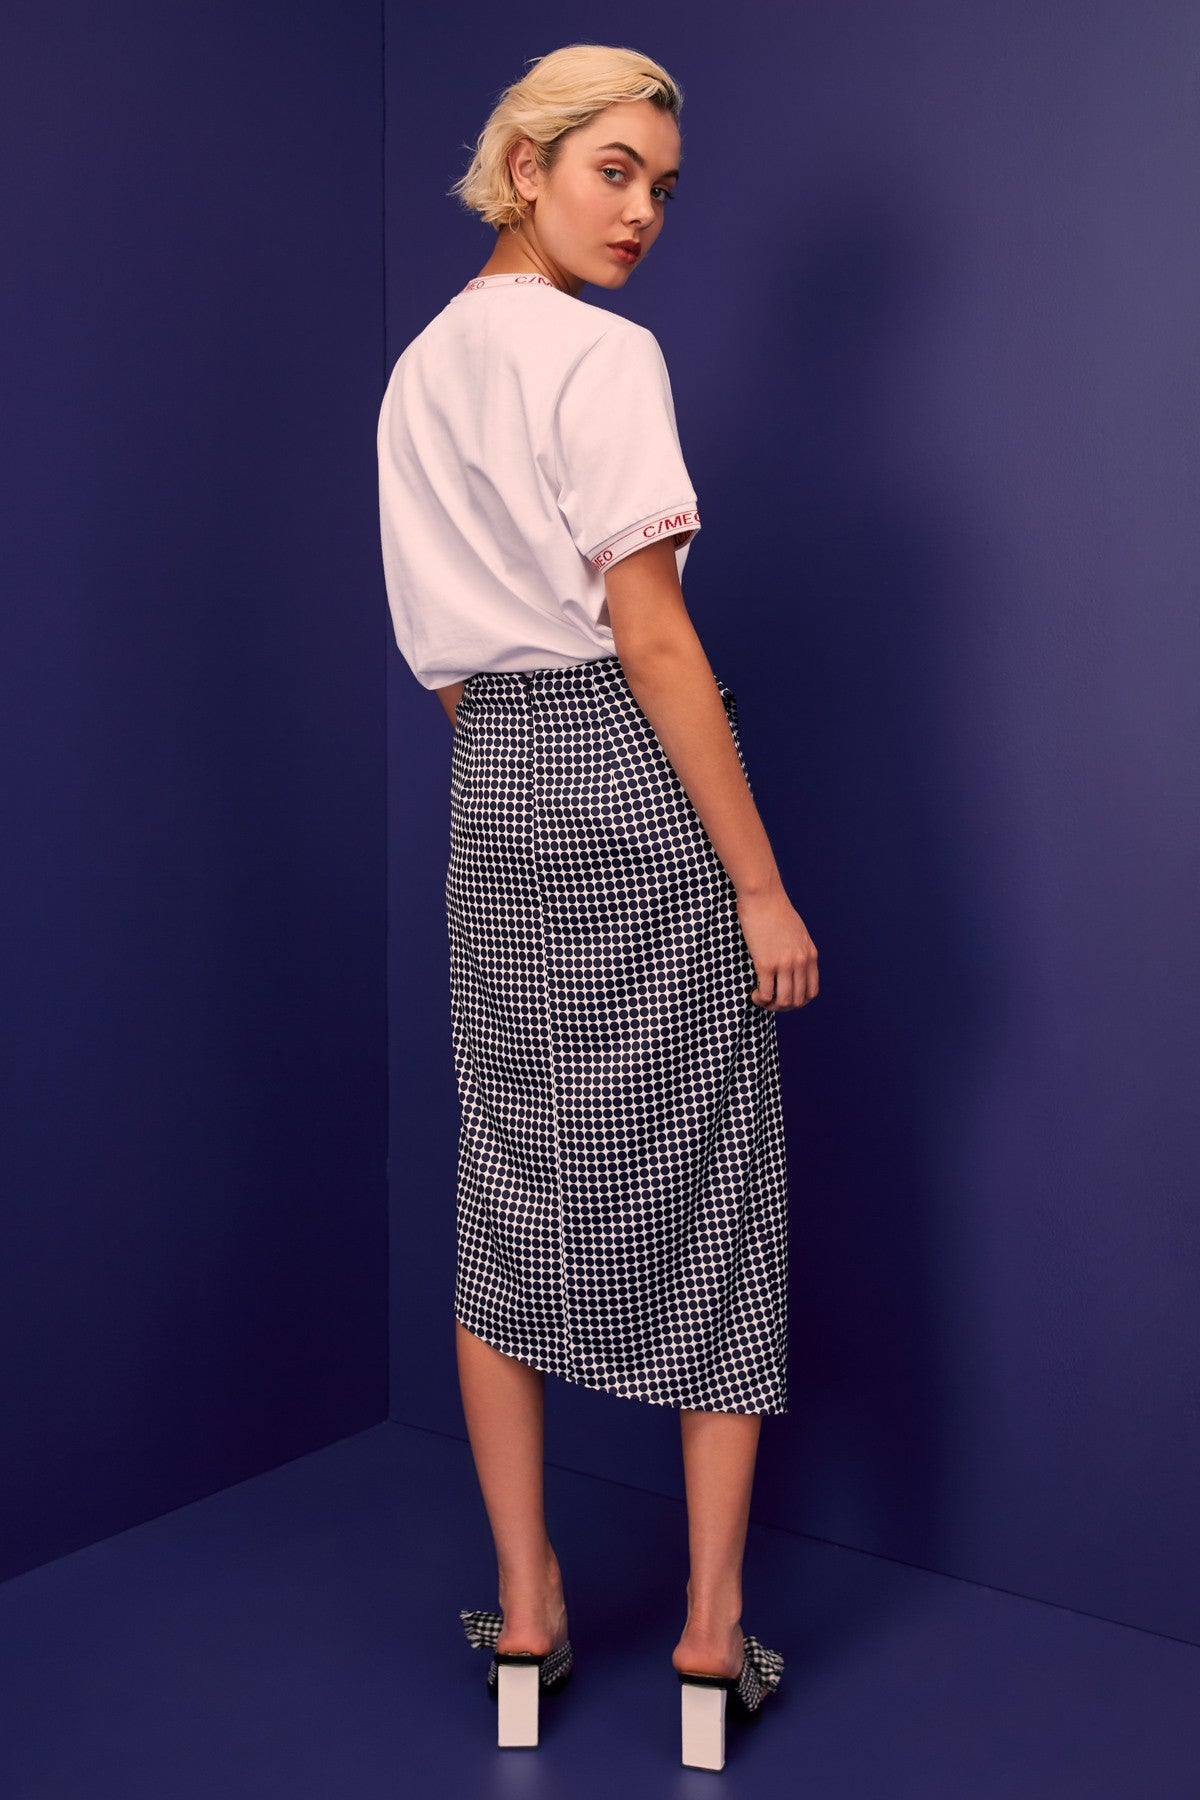 JAGGED SKIRT navy spot